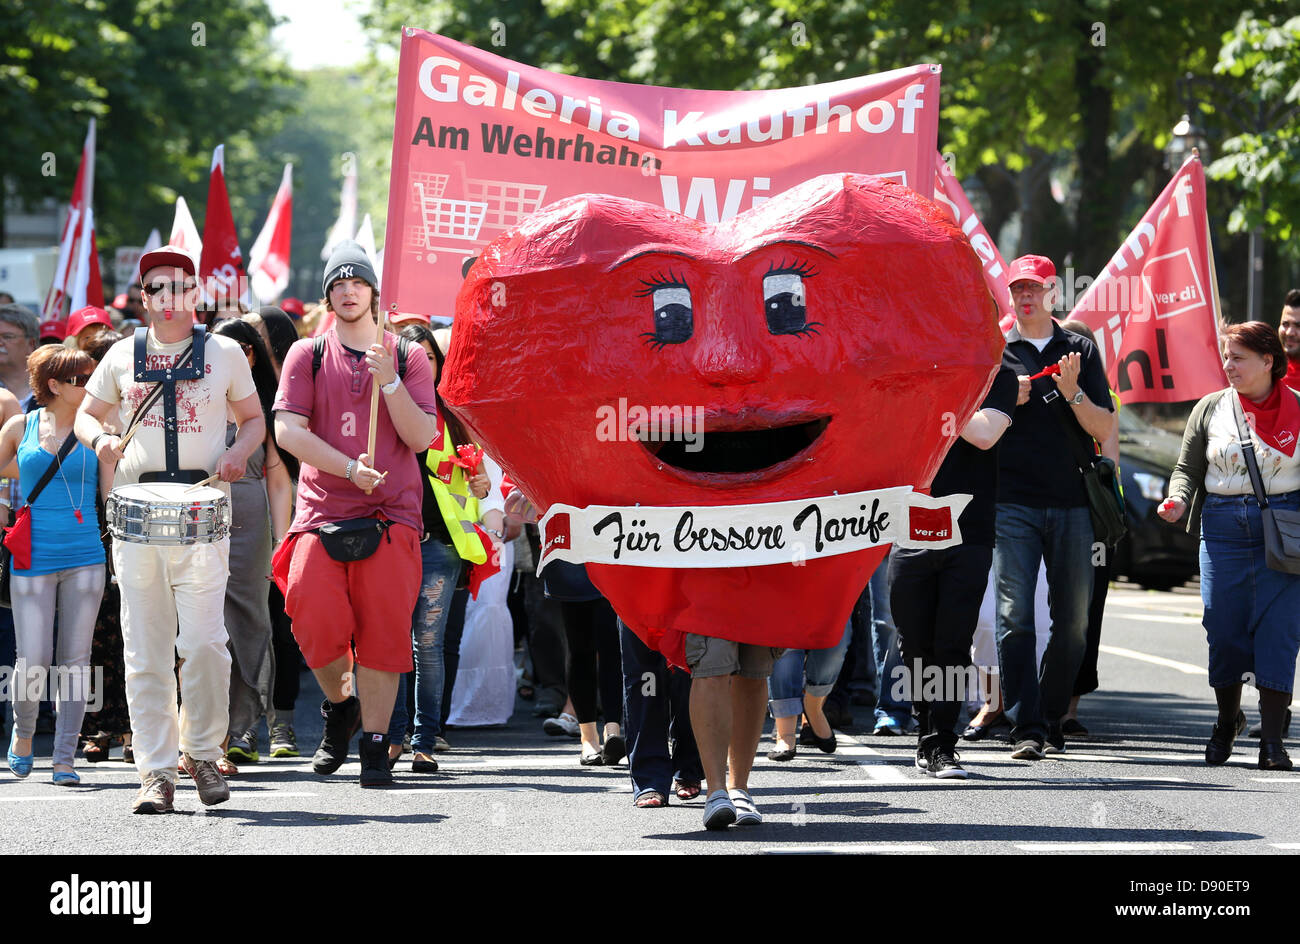 Members to the Verdi Union demonstrate in Duesseldorf,Germany, 07 June 2013. The union wants to draw attention - Stock Image